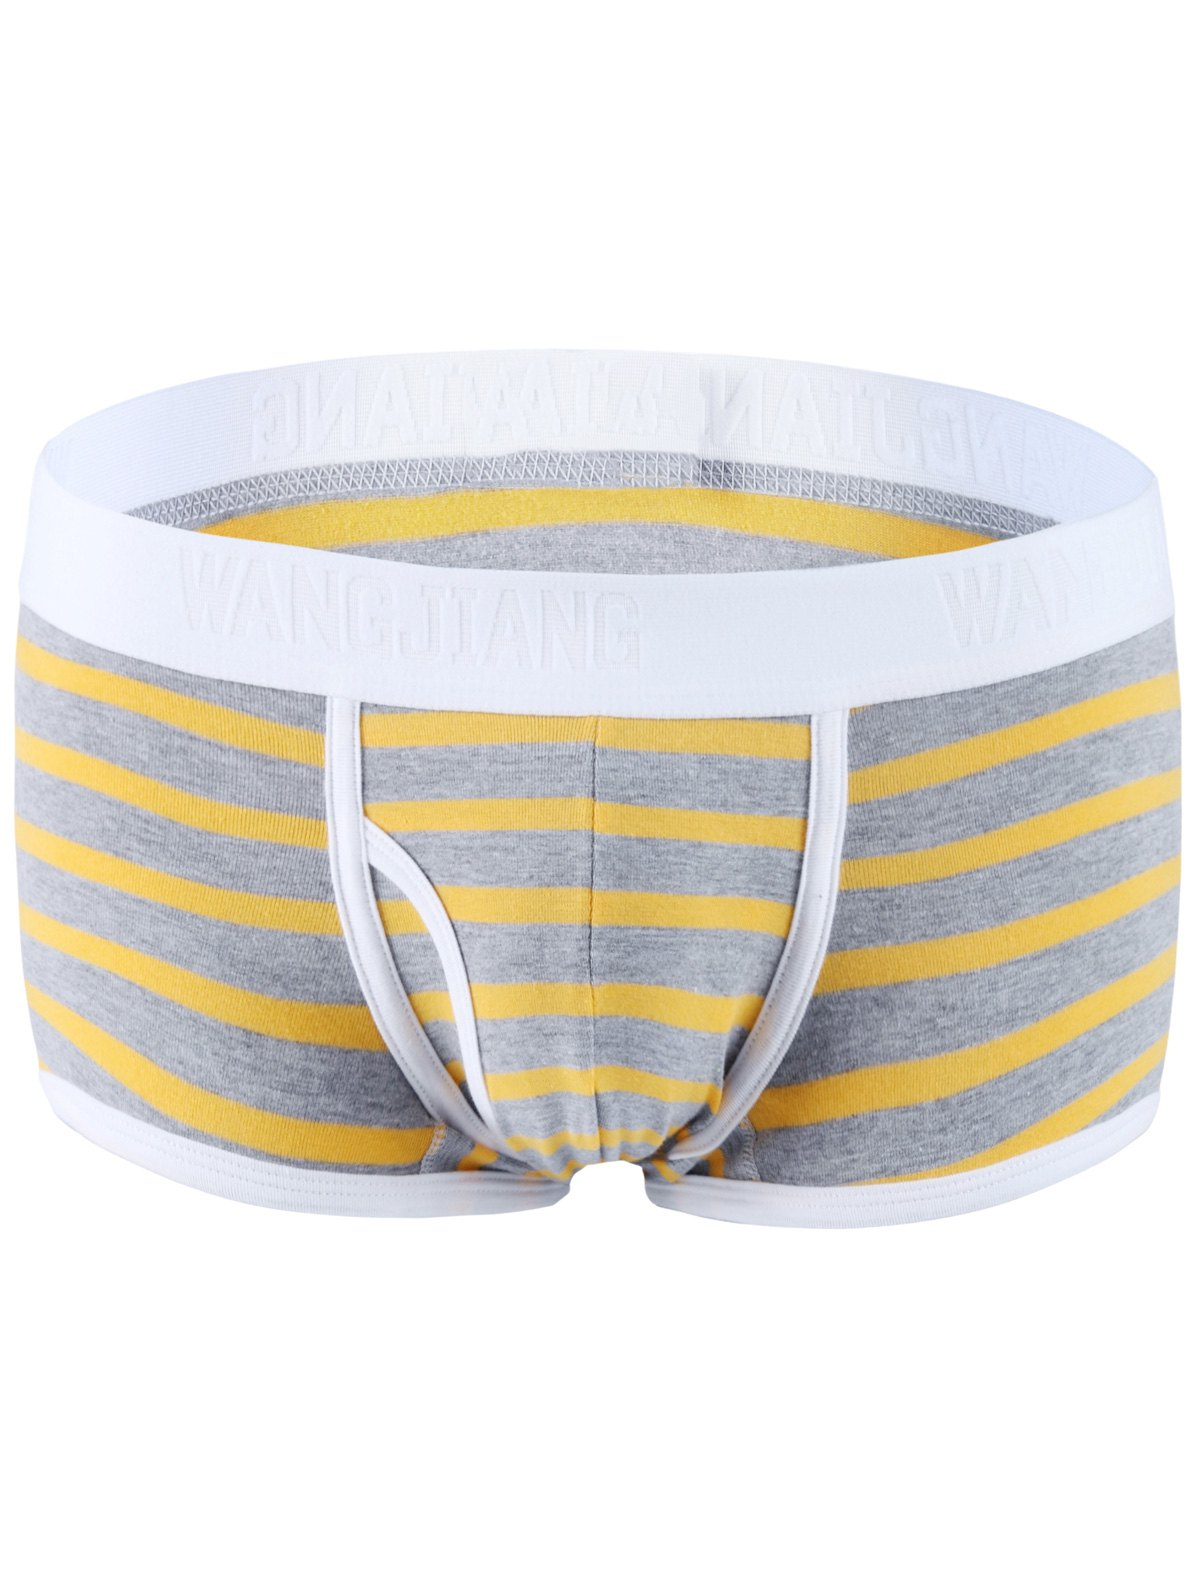 Color Block Spliced Classic Striped Boxer Underwear For Men - YELLOW / GRAY S